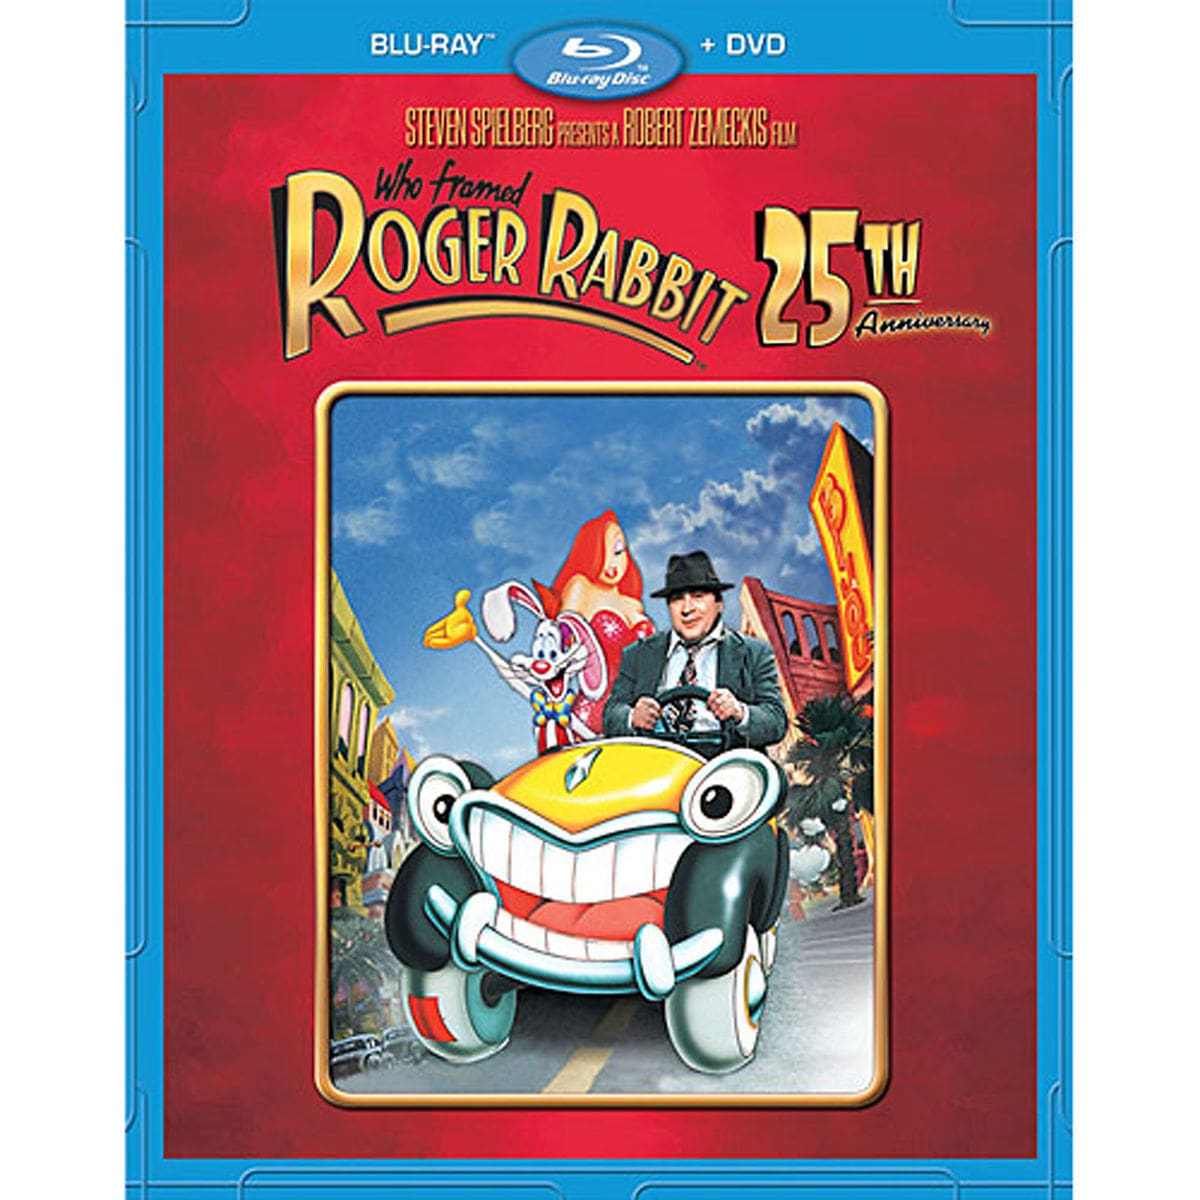 Who Framed Roger Rabbit 25th Anniversary Blu-ray and DVD Combo Pack ...